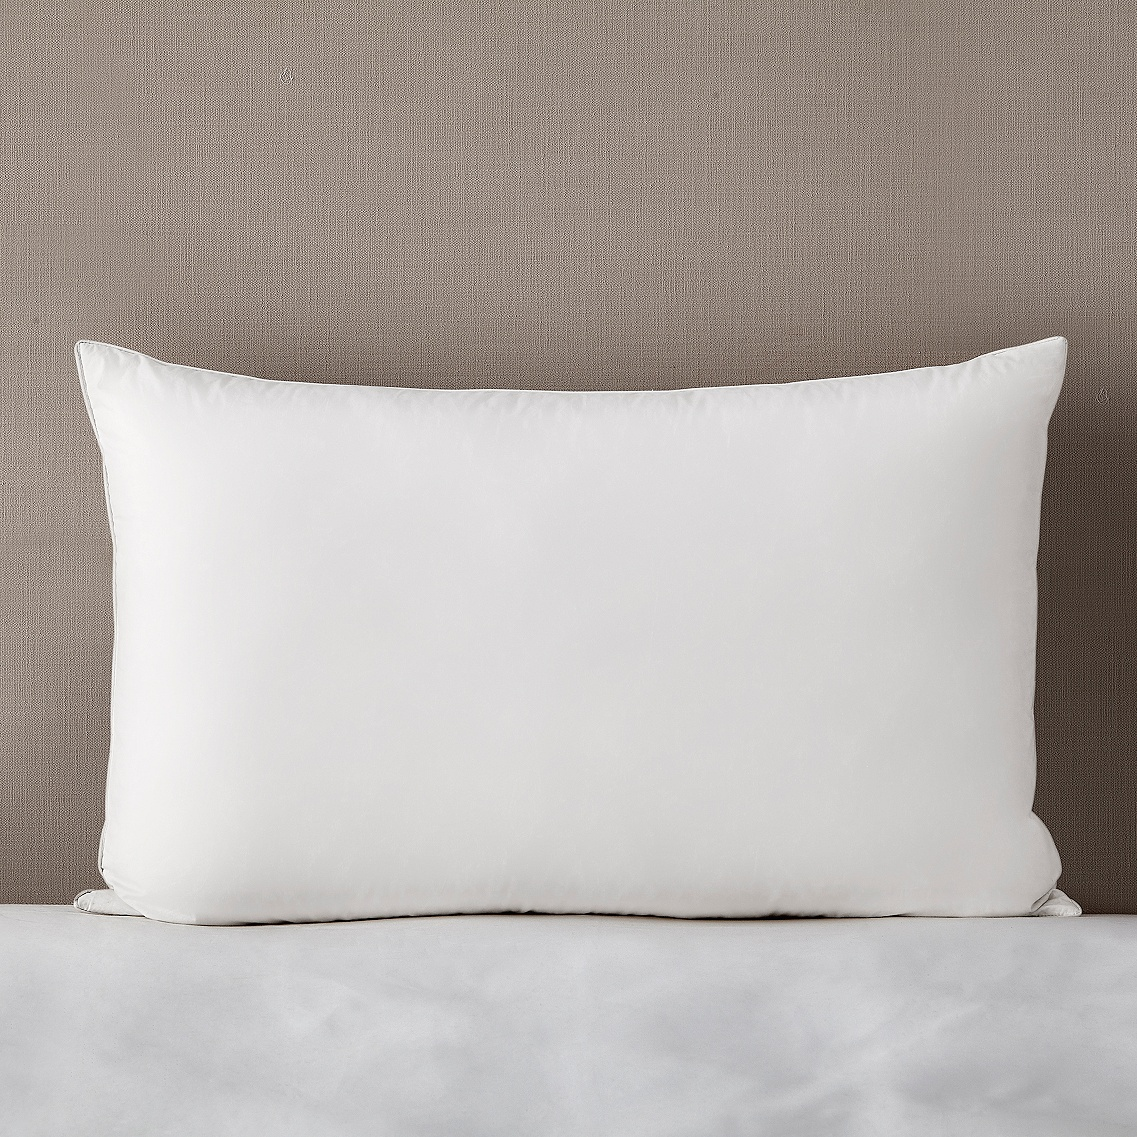 Luxurious Goose Down Pillow from The White Company